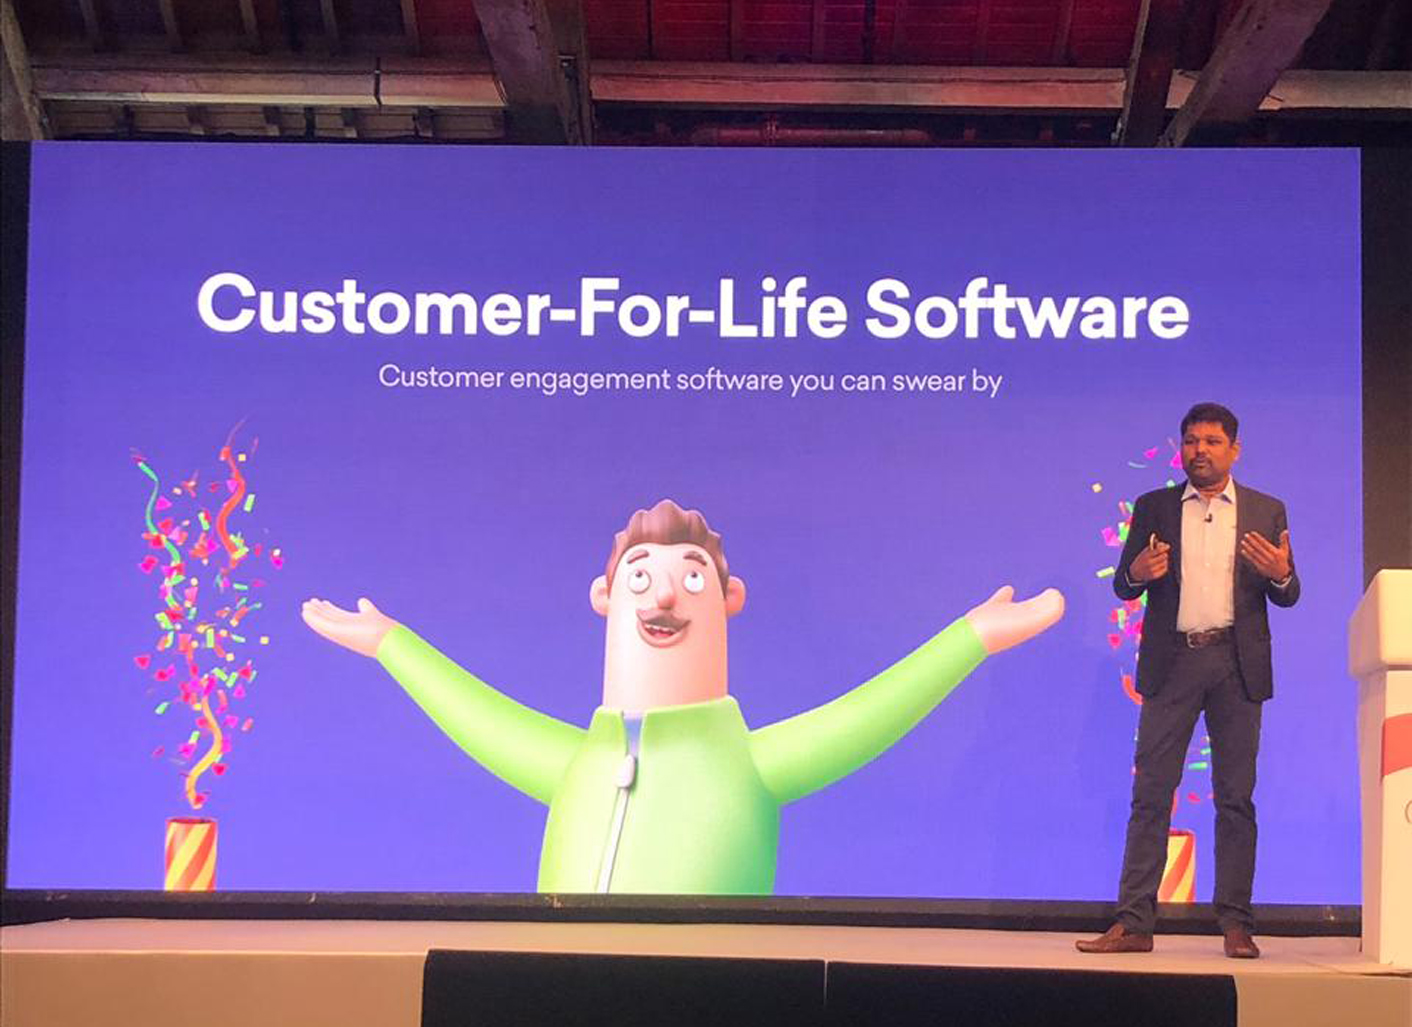 customer-for-life-software-from-Freshworks